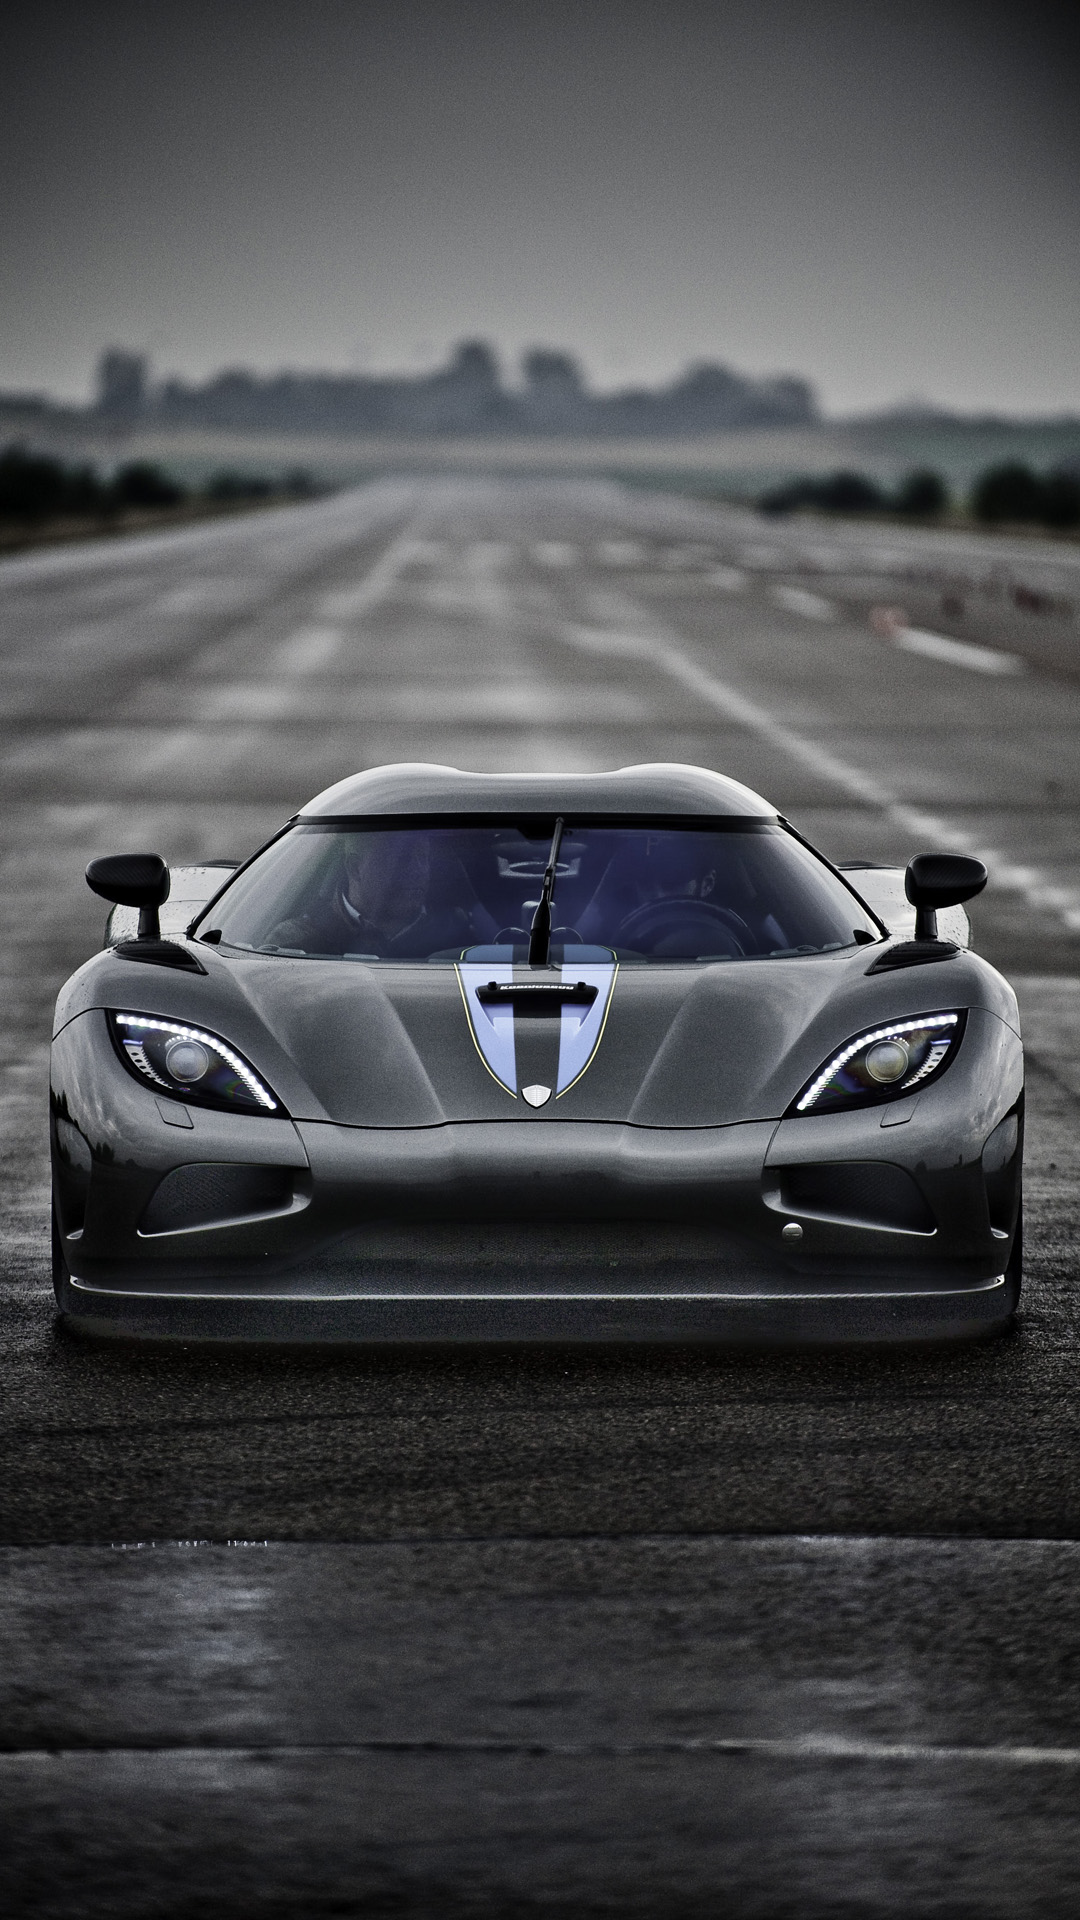 koenigsegg agera best htc one wallpapers free and easy